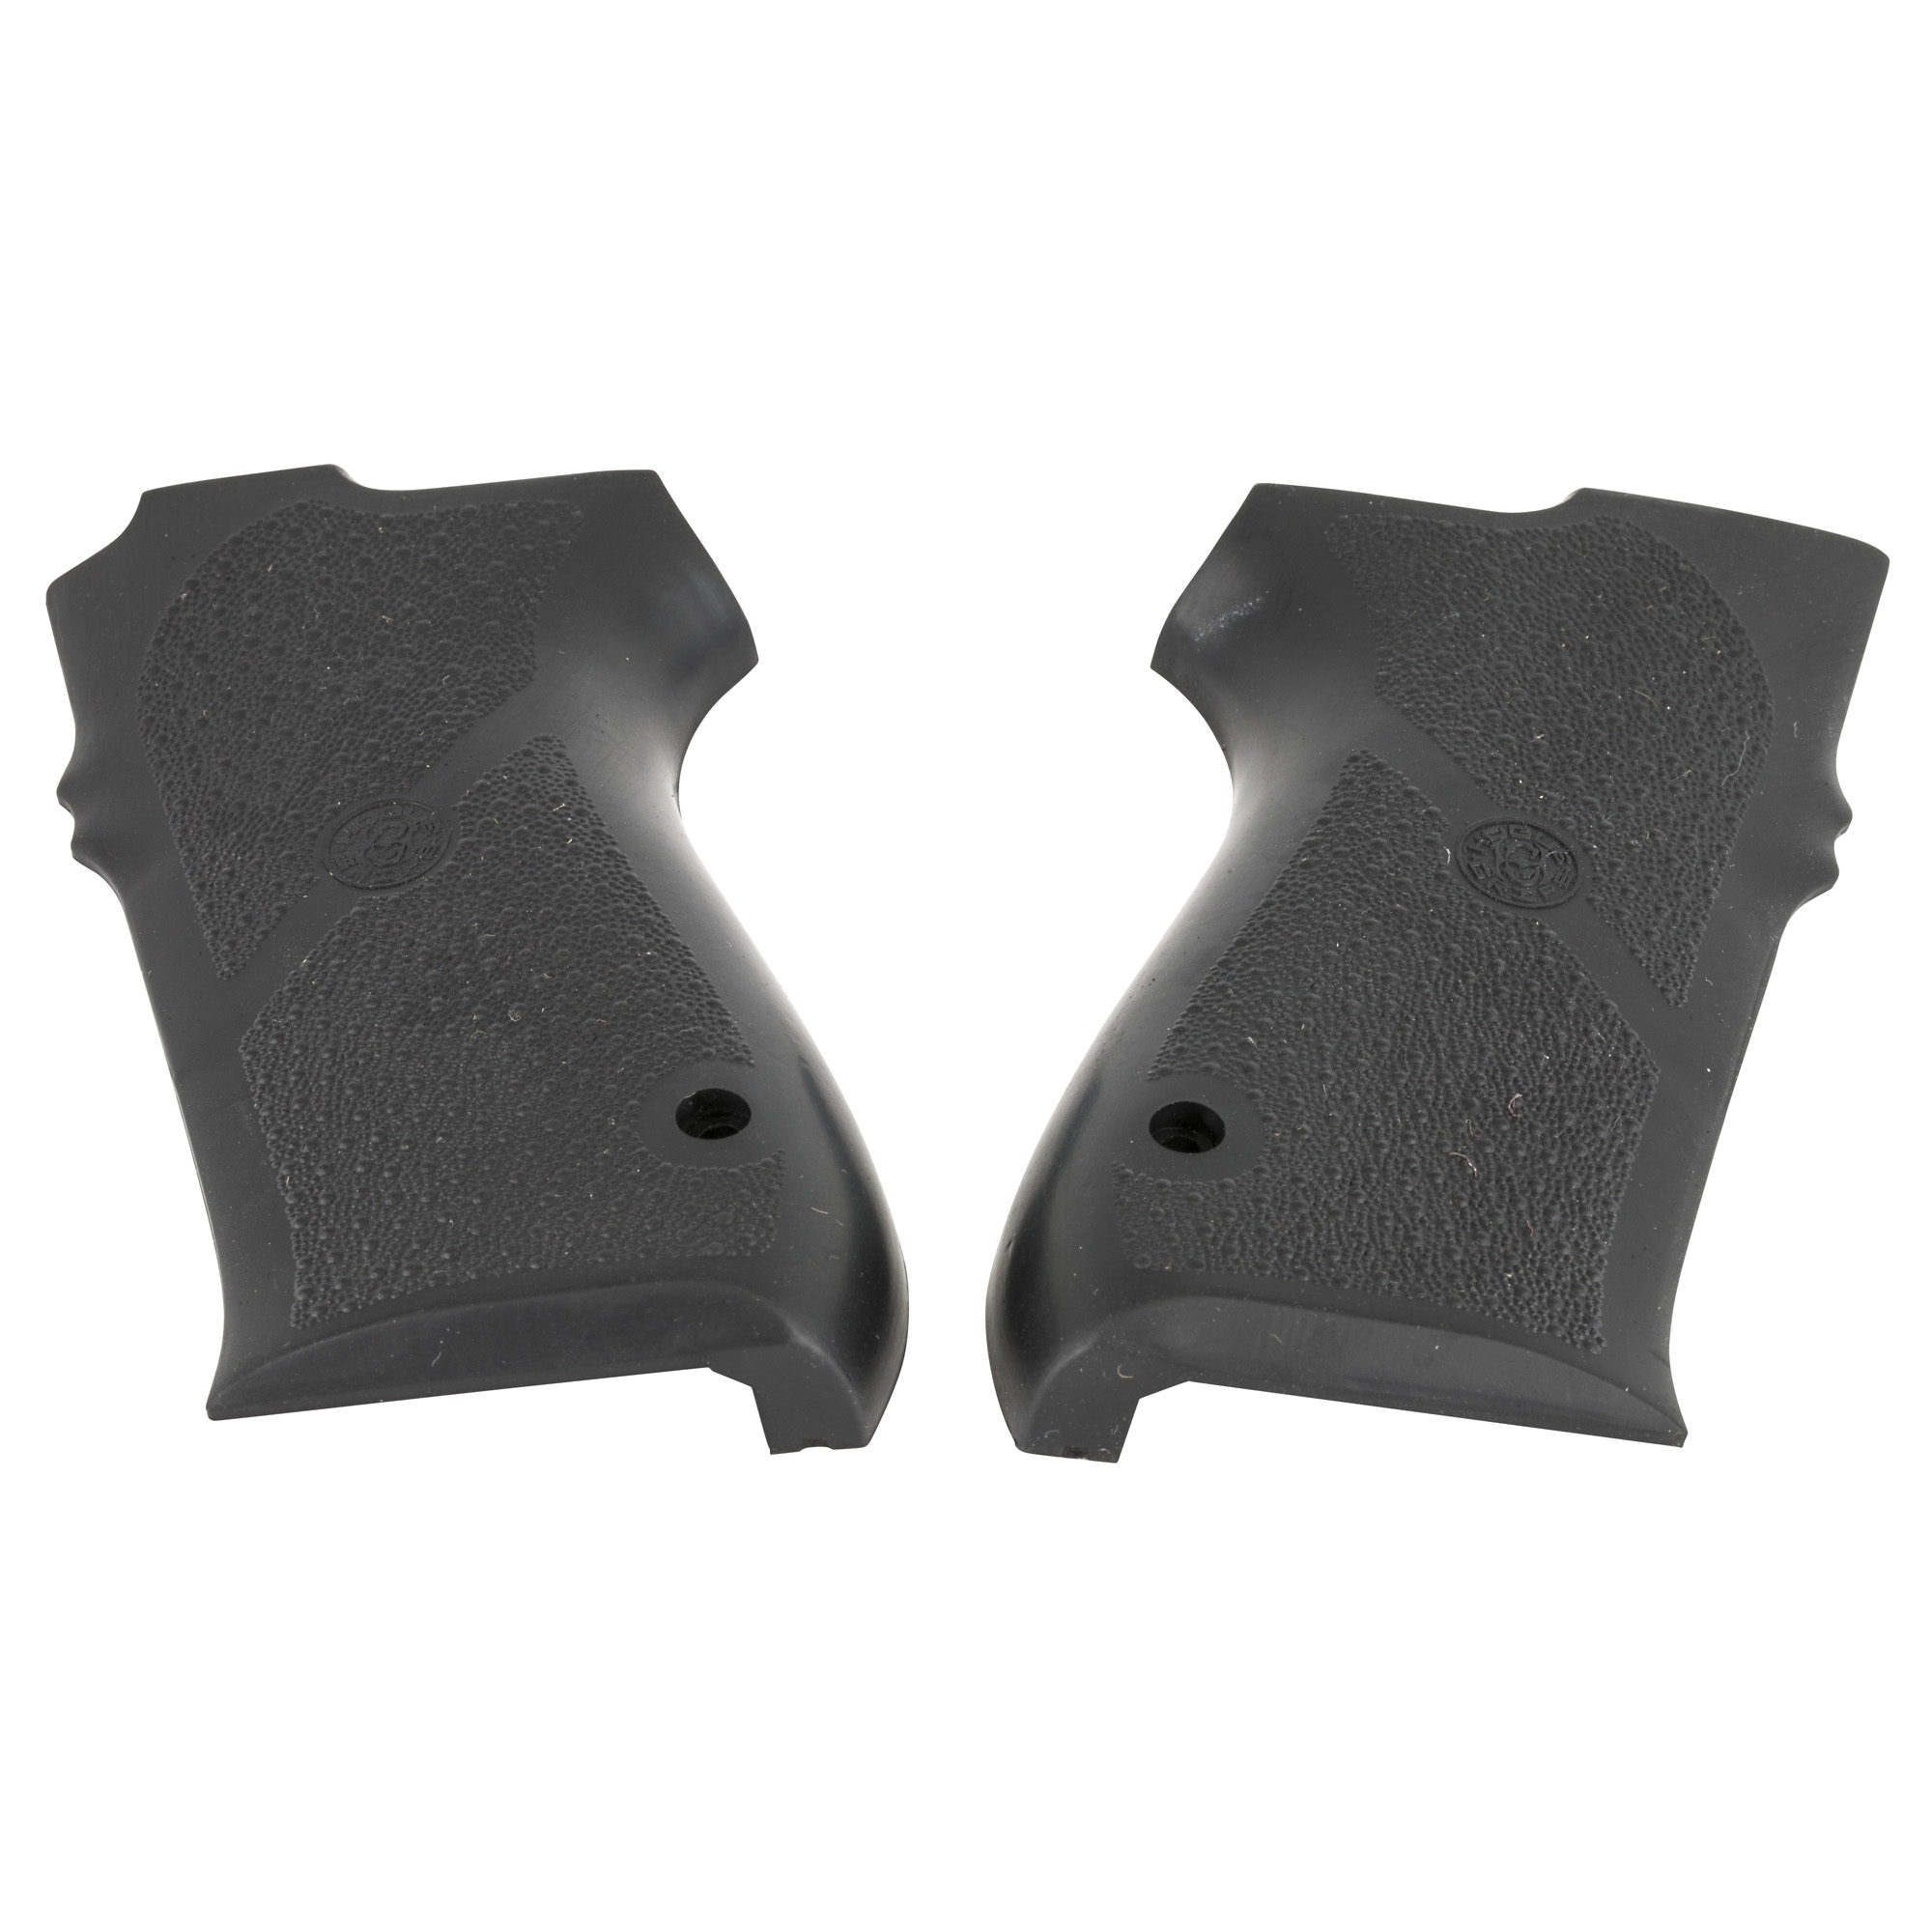 "Hogue's S&W 1006/4506 Series Rubber Grip Panels with No Finger Grooves are molded from a durable synthetic rubber that is not spongy or tacky"" but gives that soft recoil absorbing feel"" without affecting accuracy. This modern rubber requires a completely different molding process than ordinary neoprene and results in a much superior grip. The material they use does not come apart or deteriorate and is resistant to all solvents and oils used around firearms. Hogue Grips give you a lasting precision fit and durability that will provide years of dependable service. The flexibility of their materials and molding process has allowed them to produce superior rubber grips with features that out perform all other makes. Will not fit frame decocker models with a 2"" or 7"" third digit."